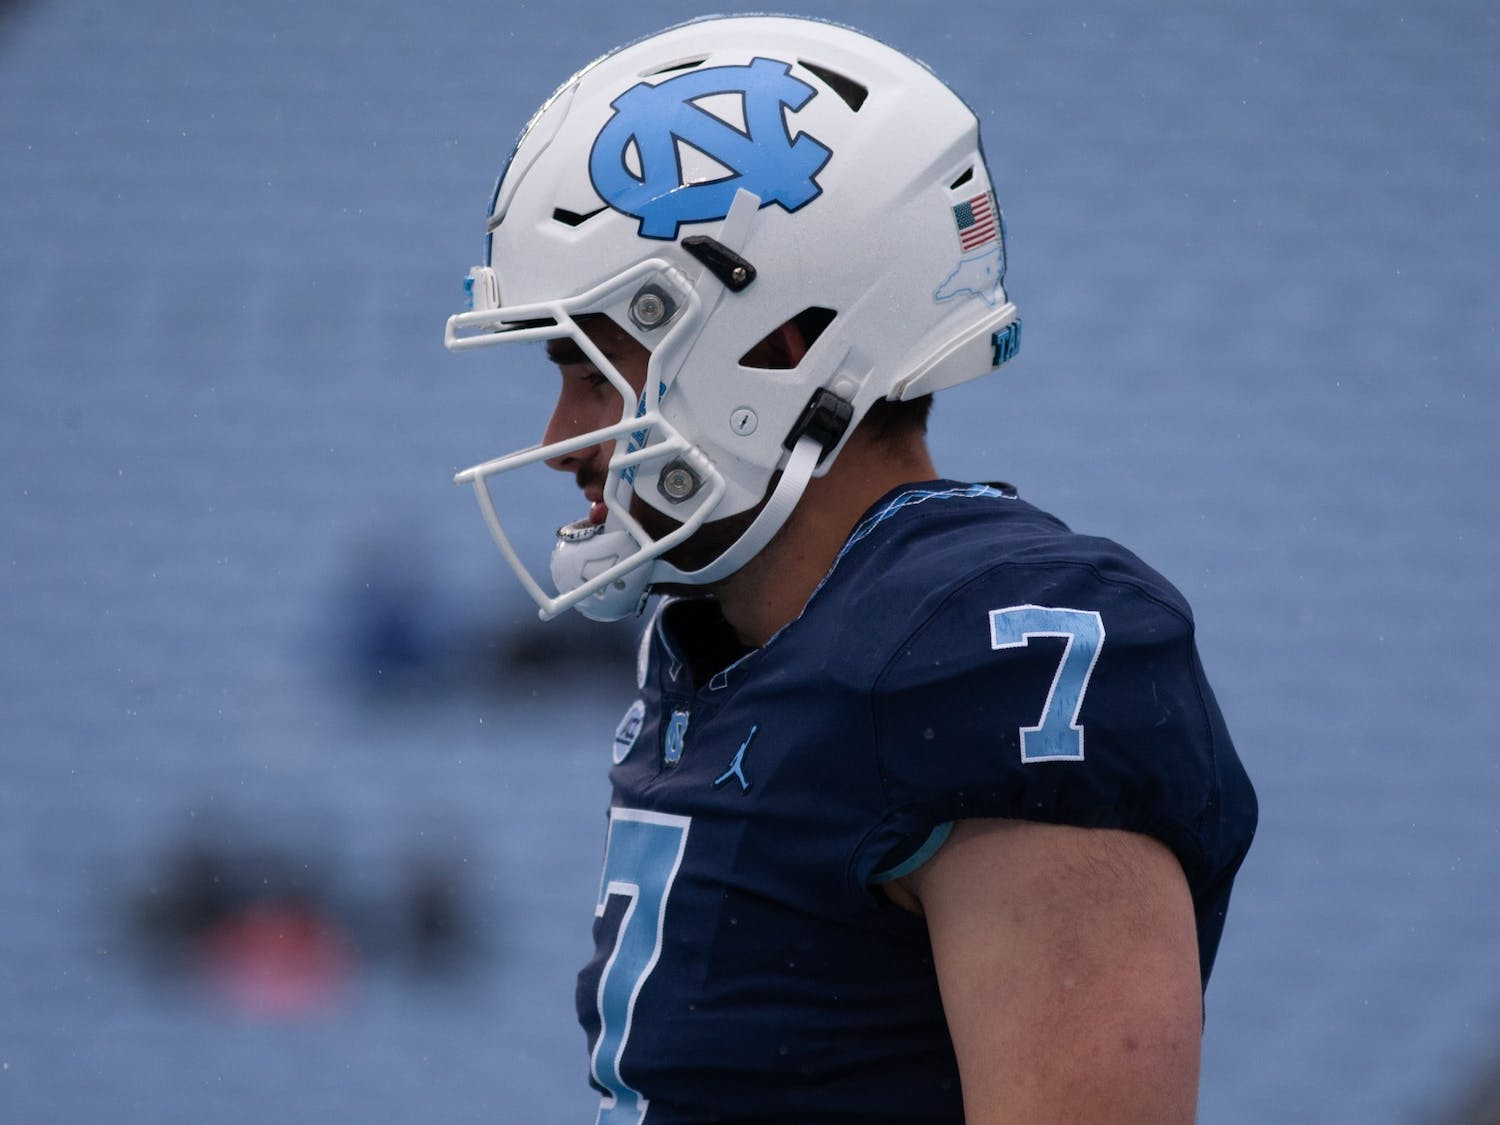 UNC junior quarterback Sam Howell (7) waits for his turn in a drill during Carolina's rainy spring game on April 24th in Kenan Stadium.